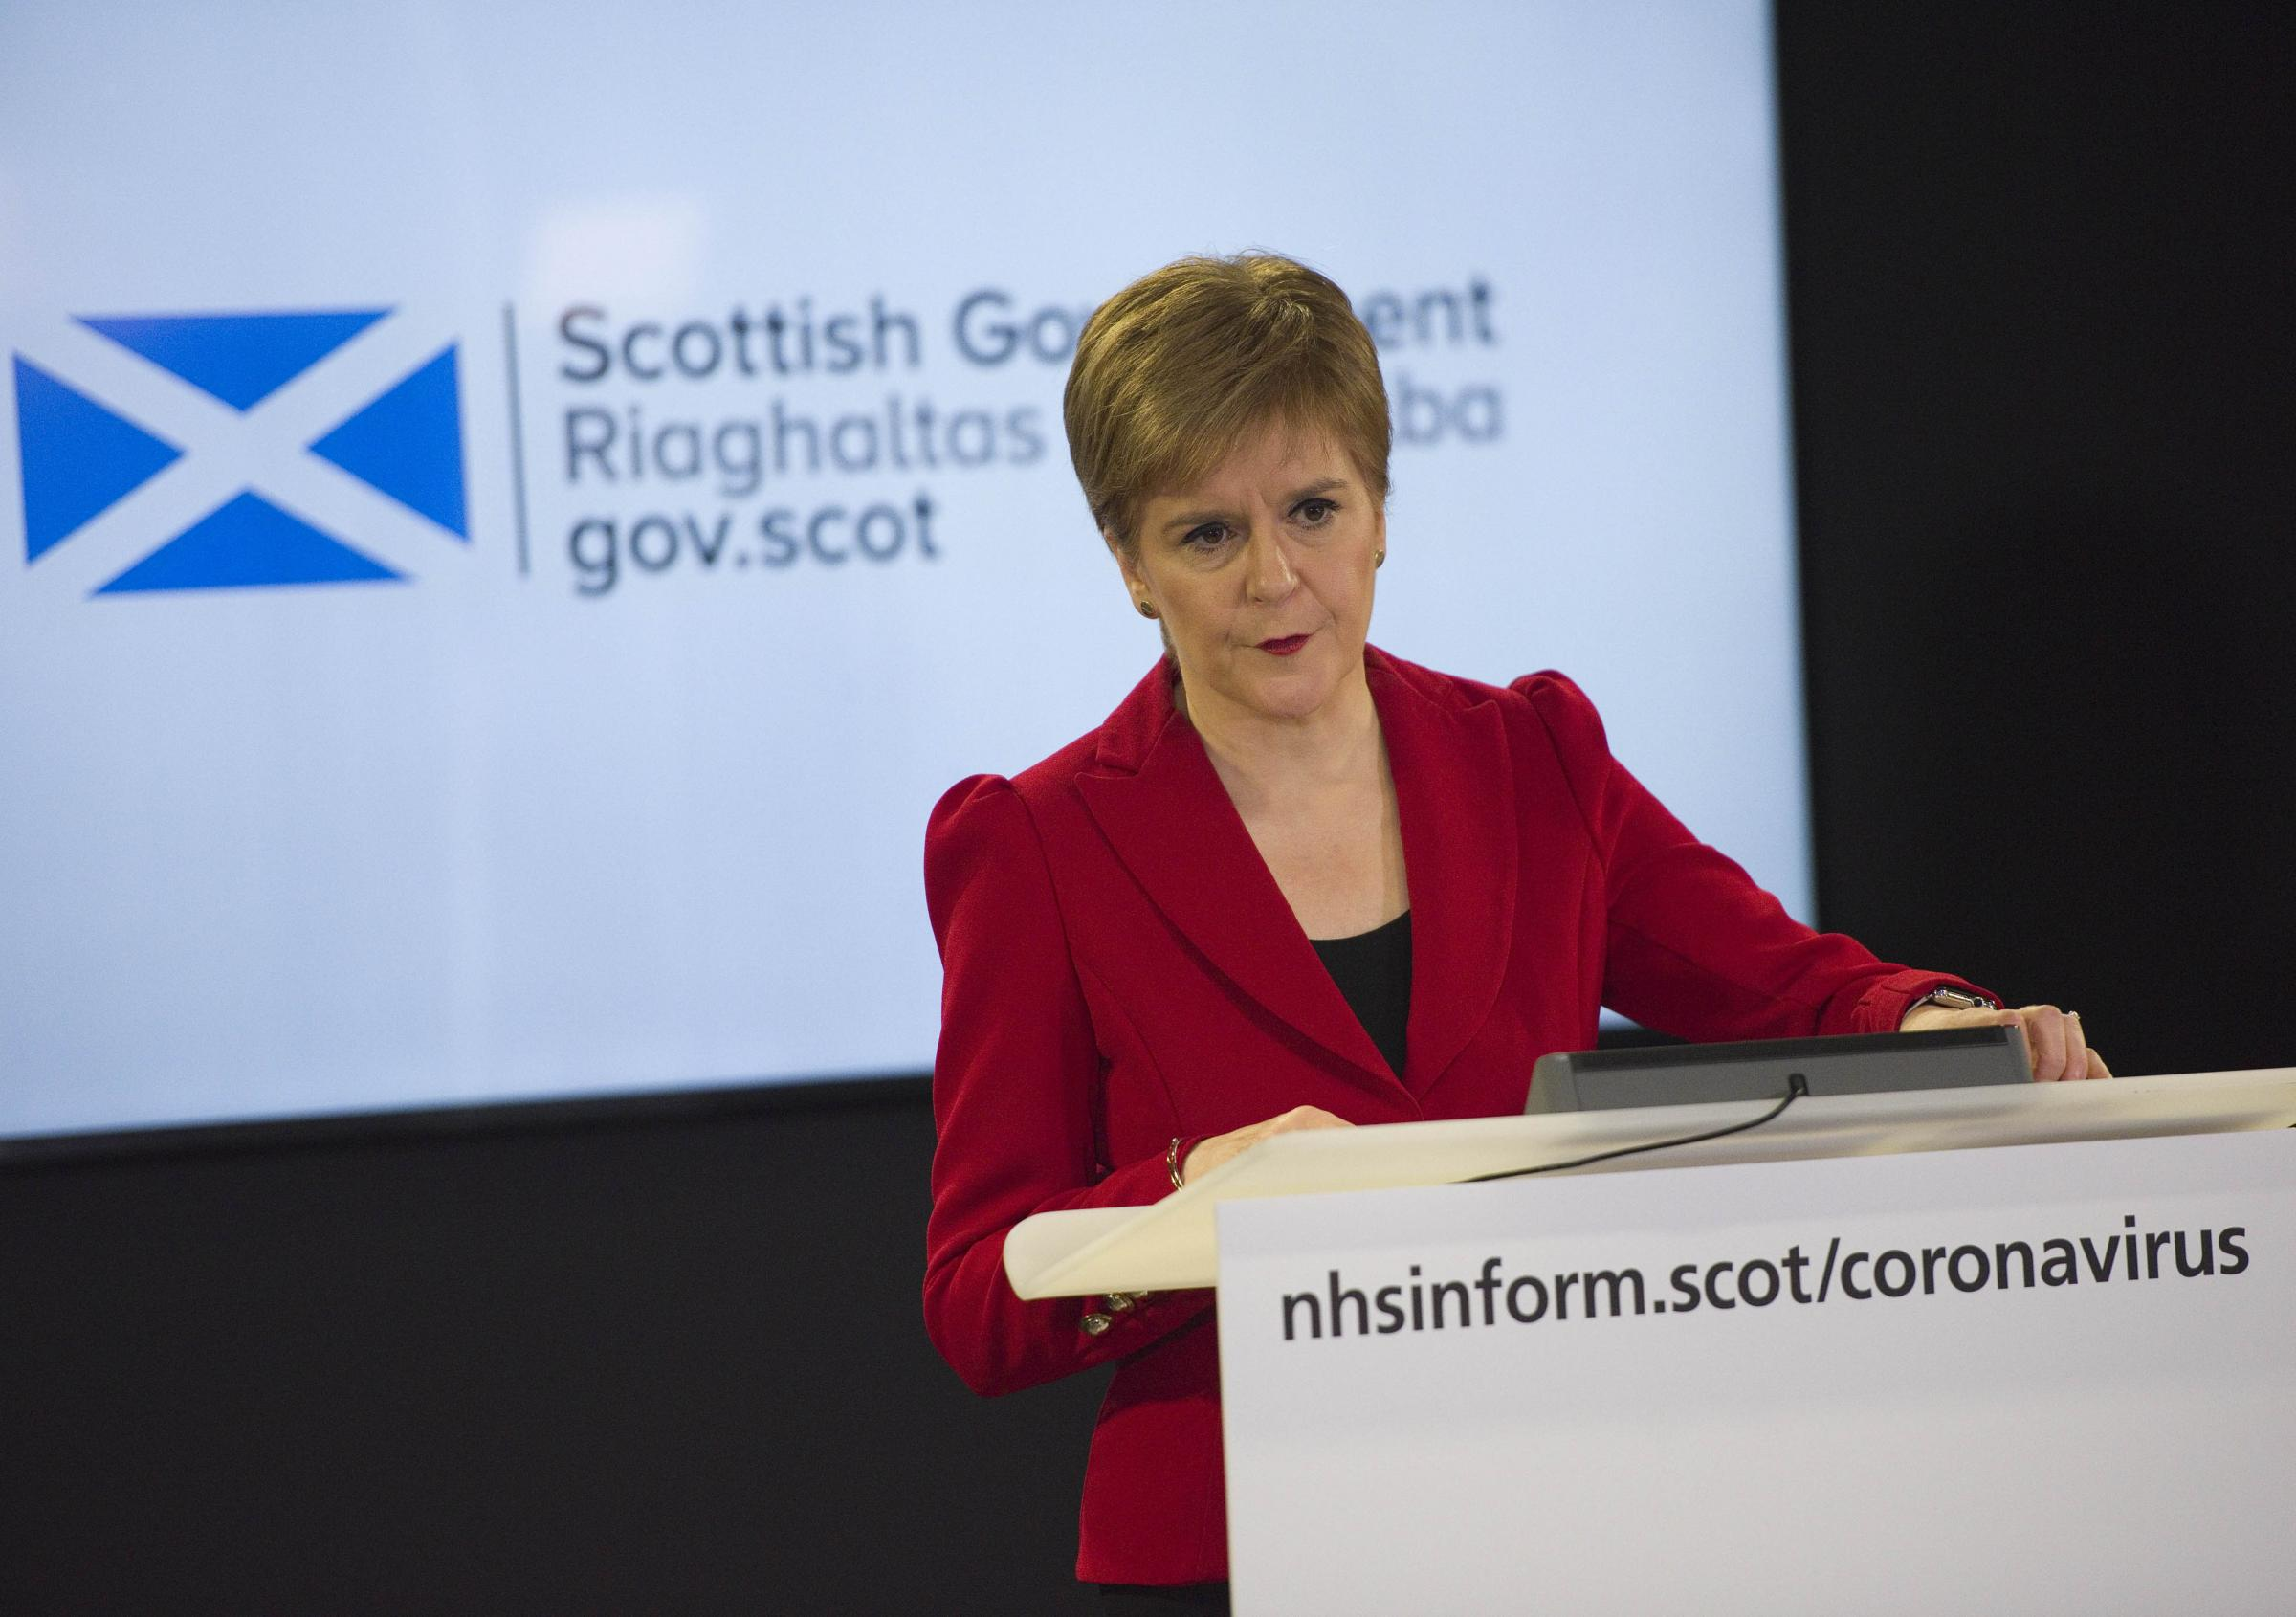 Nicola Sturgeon urges health workers to complain to Government, not media